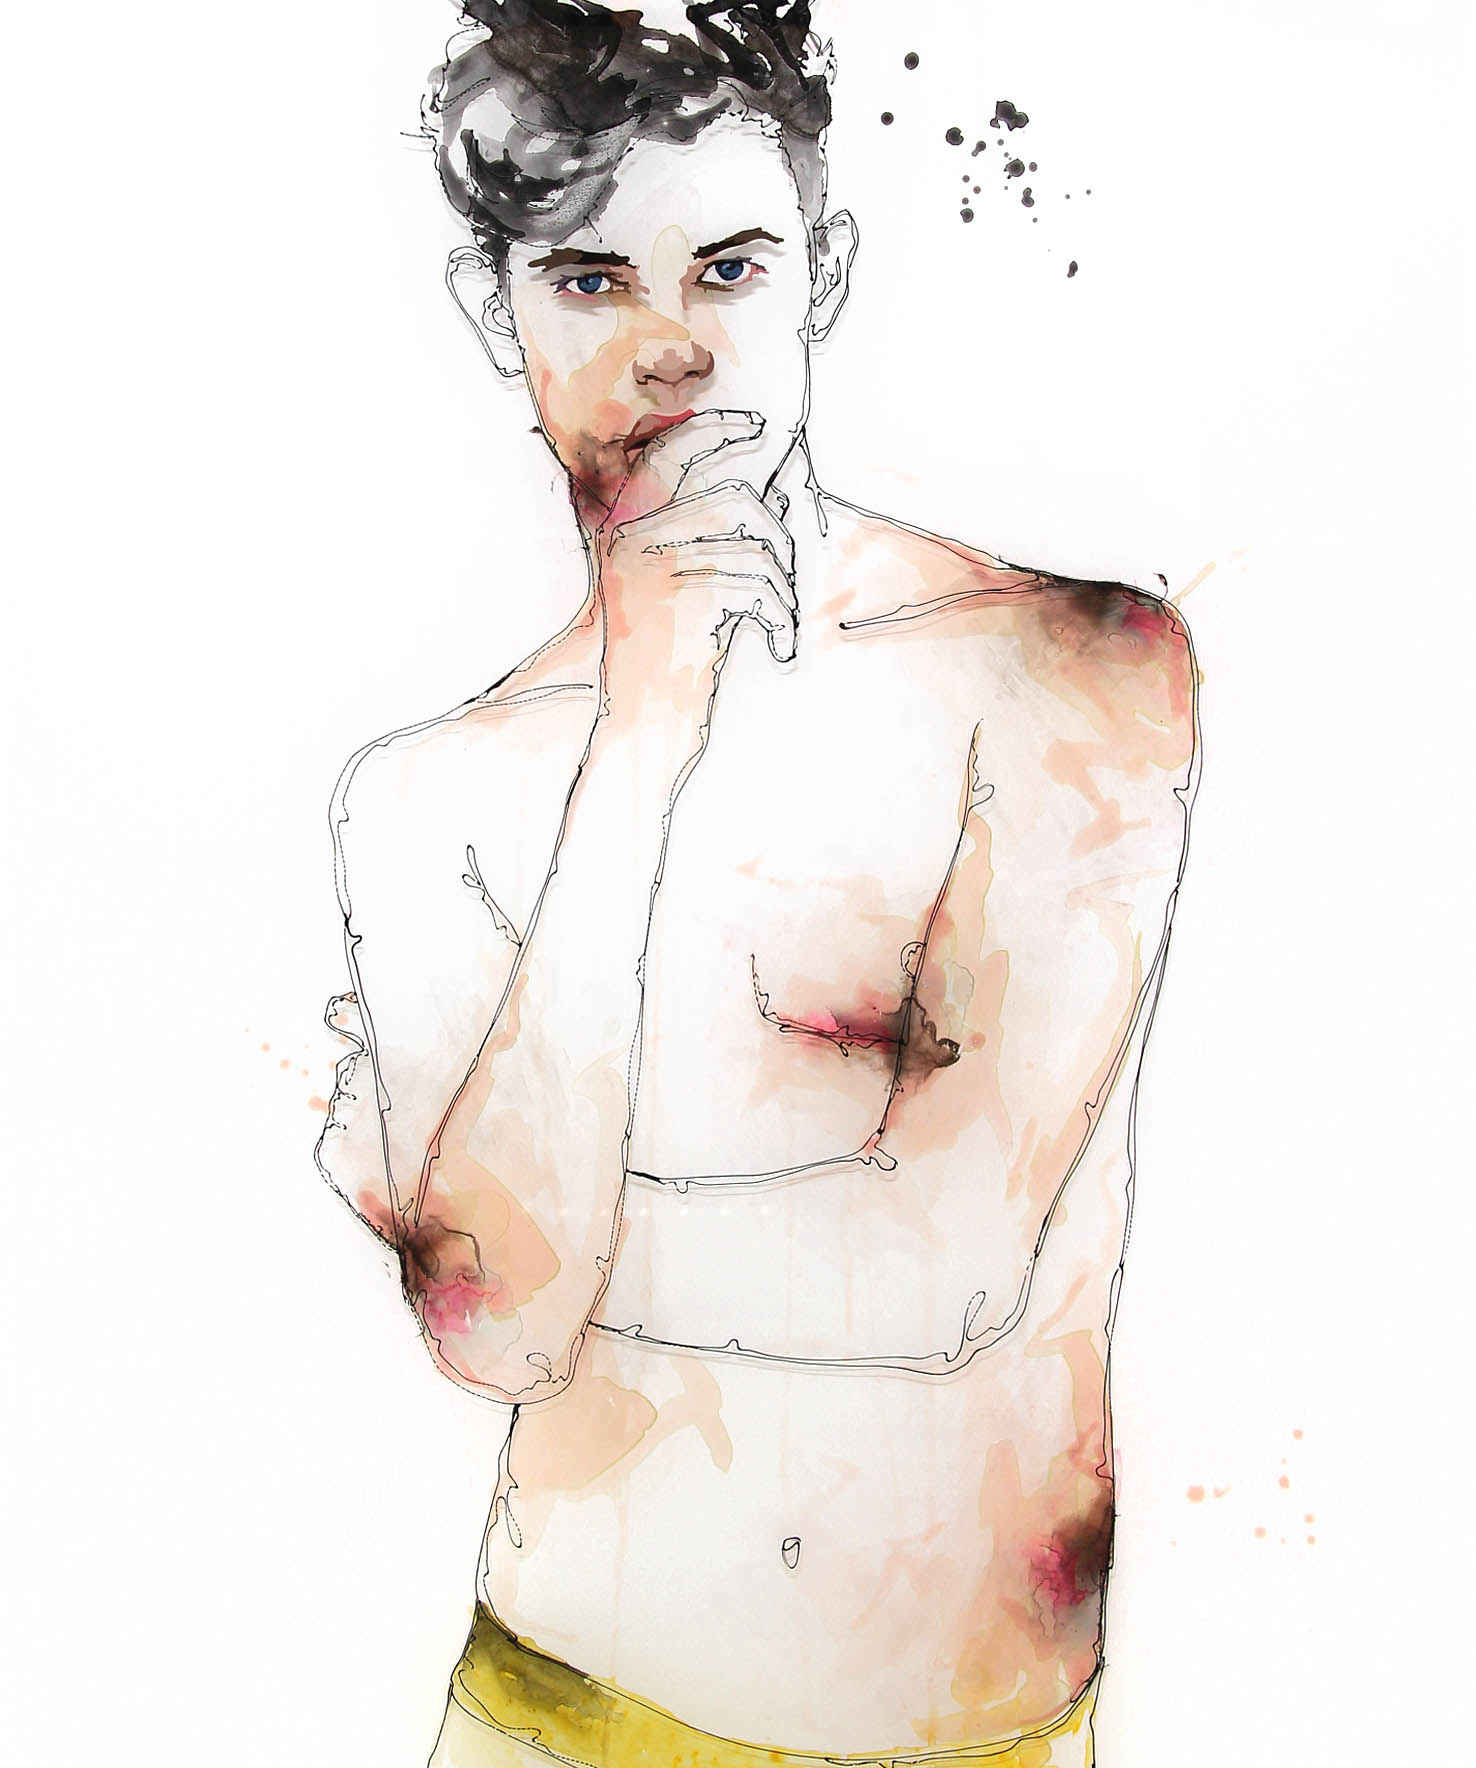 Untitled Male Portrait by Call Me Frank